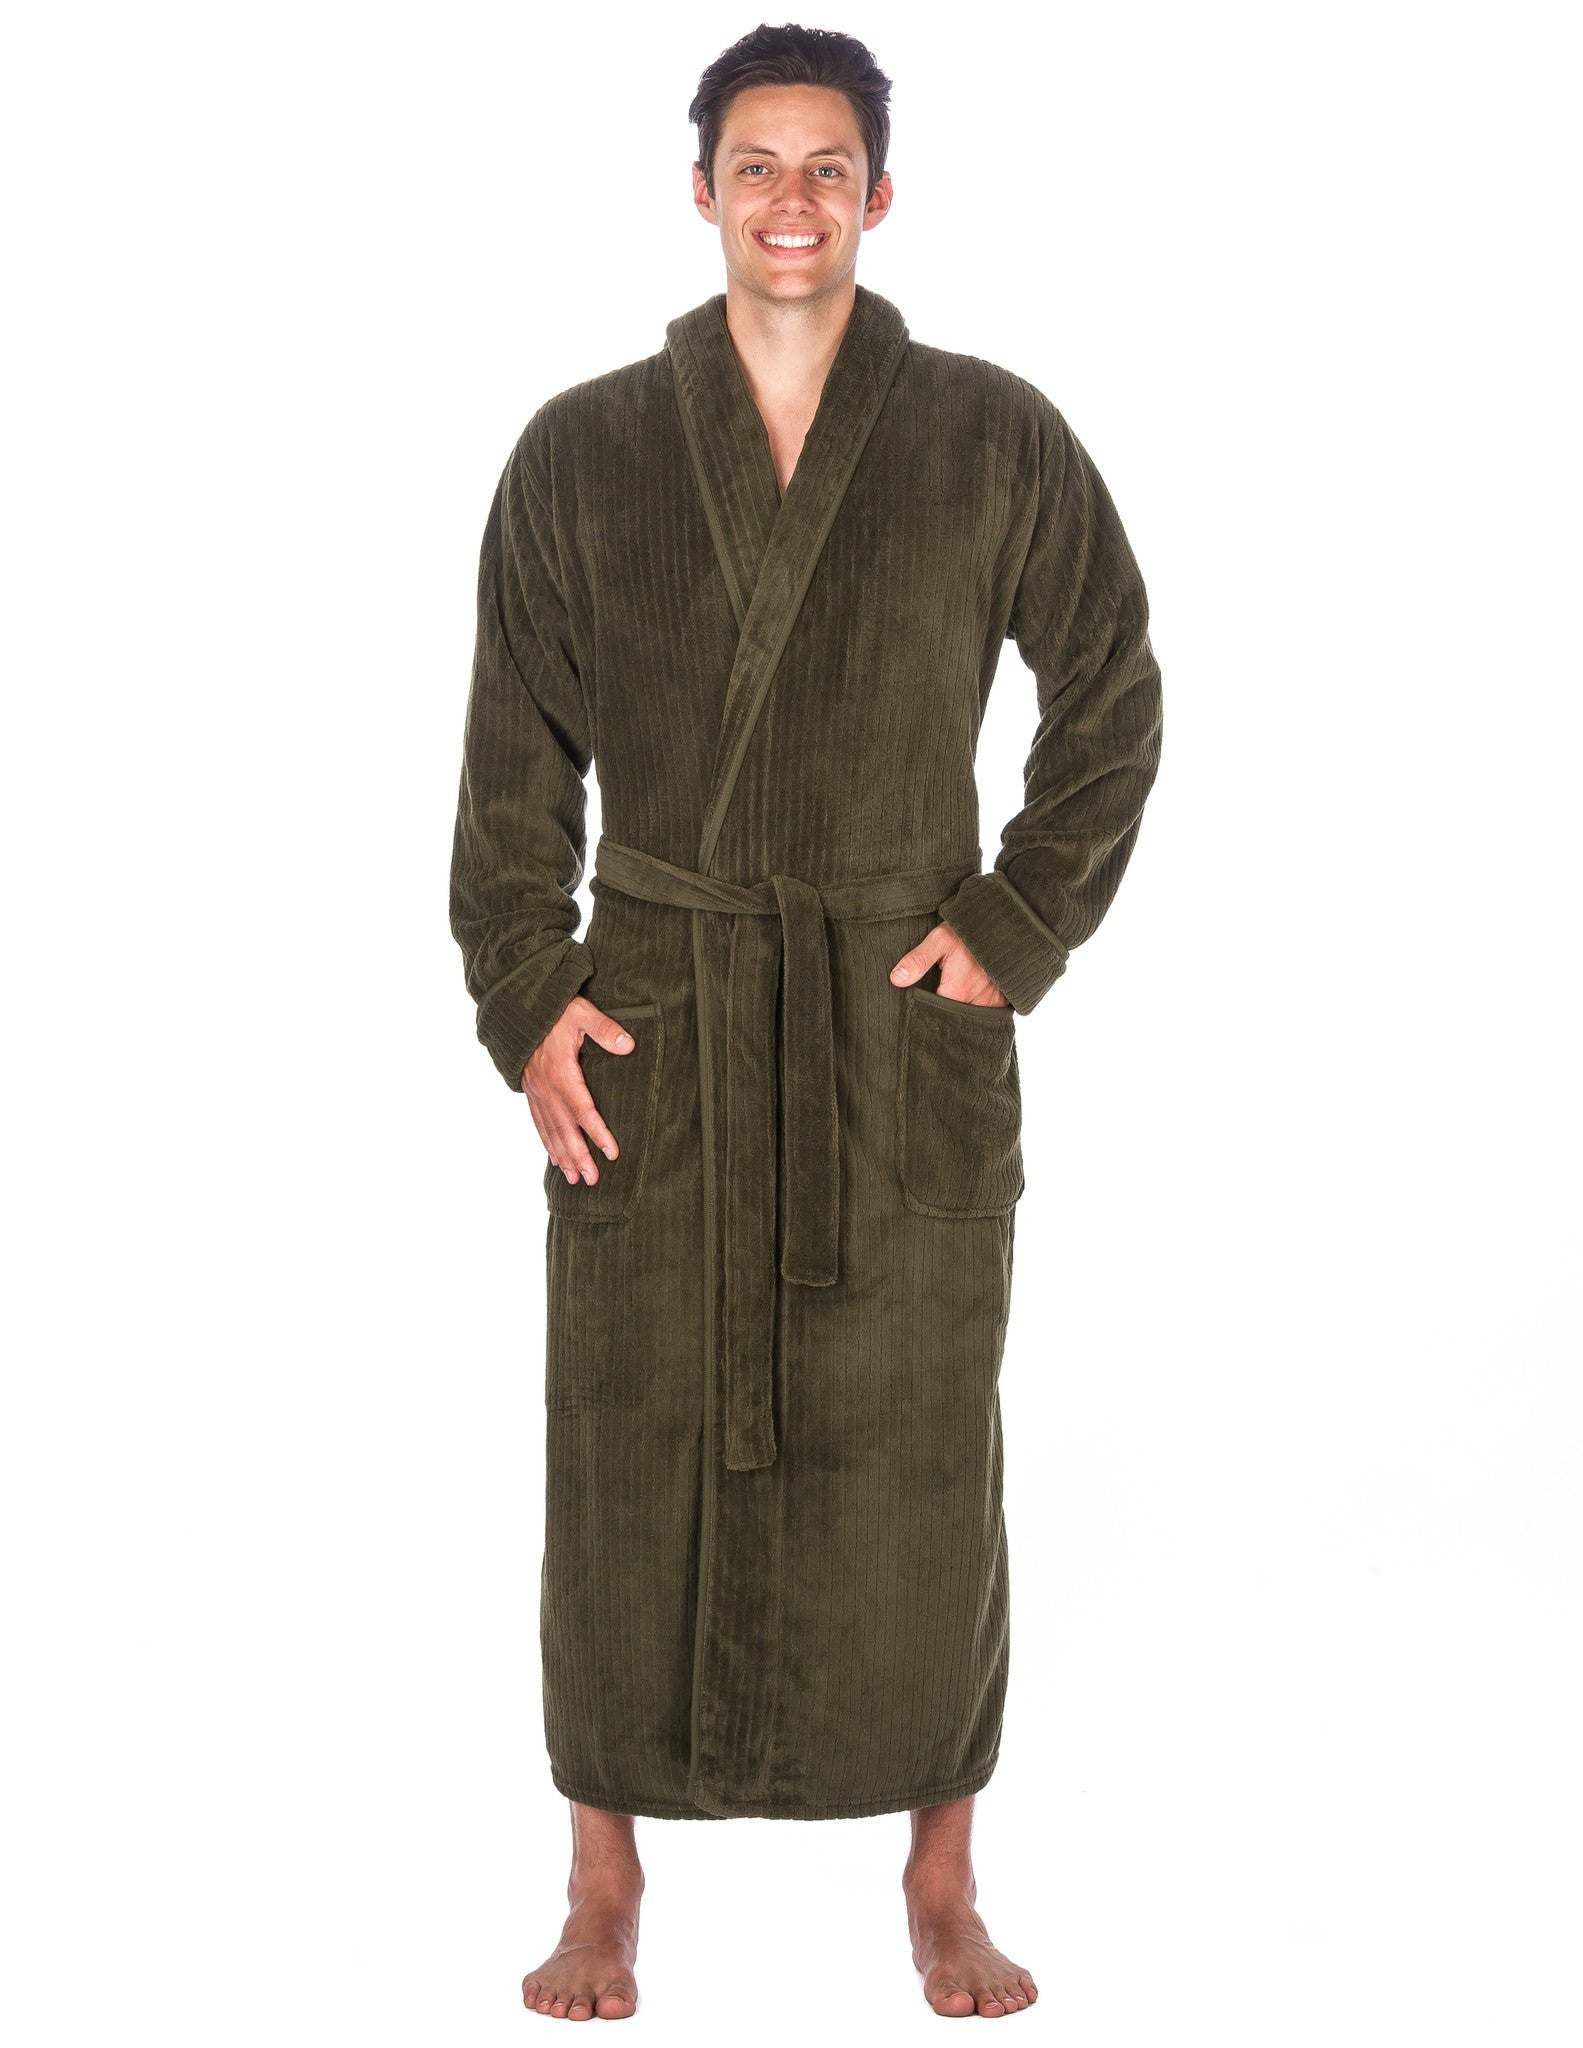 Men's Premium Coral Fleece Long Hooded Plush Spa/Bath Robe